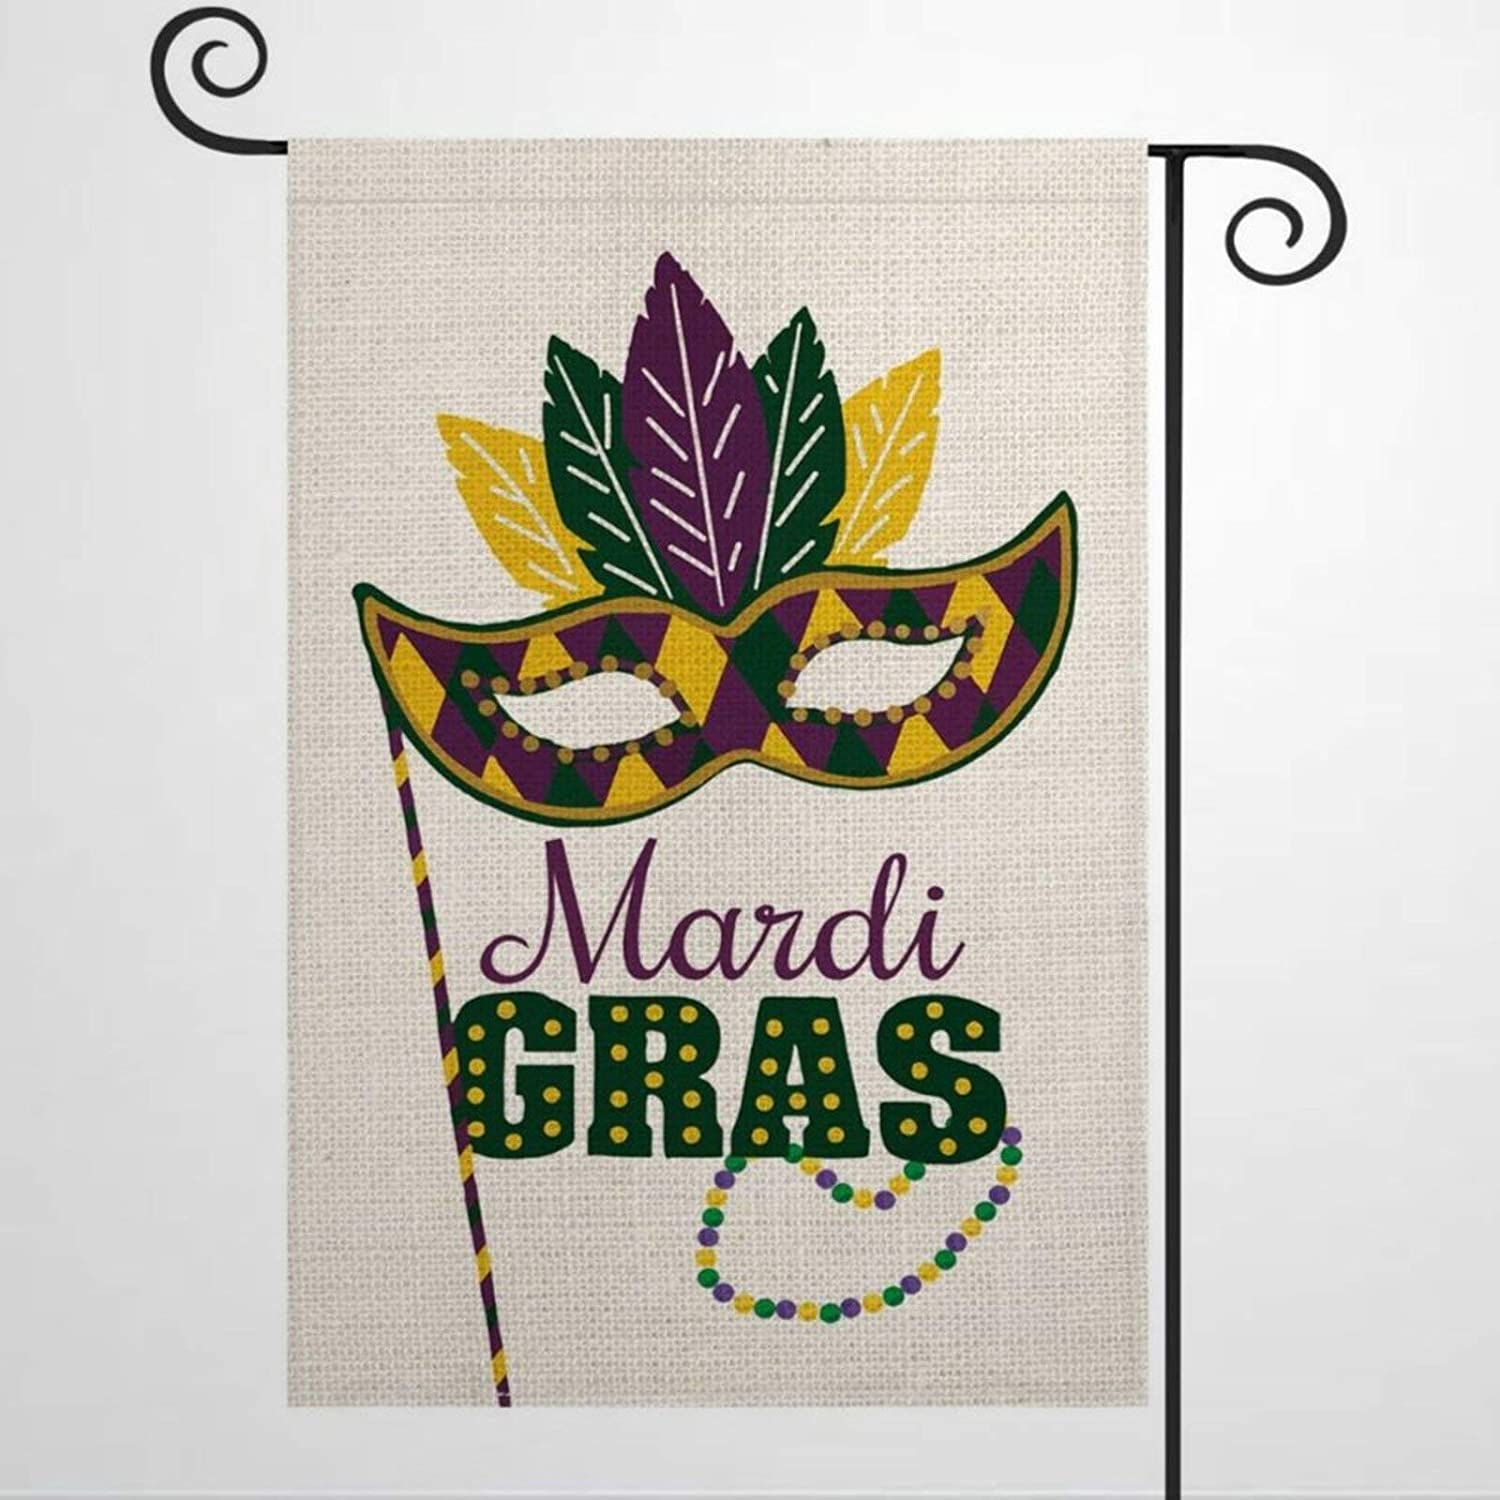 Garden Flag Mardi Gras Masquerade M-Ask Yard Decor House Decor Flag Seasonal Banners for Patio Lawn Outdoor 12x18